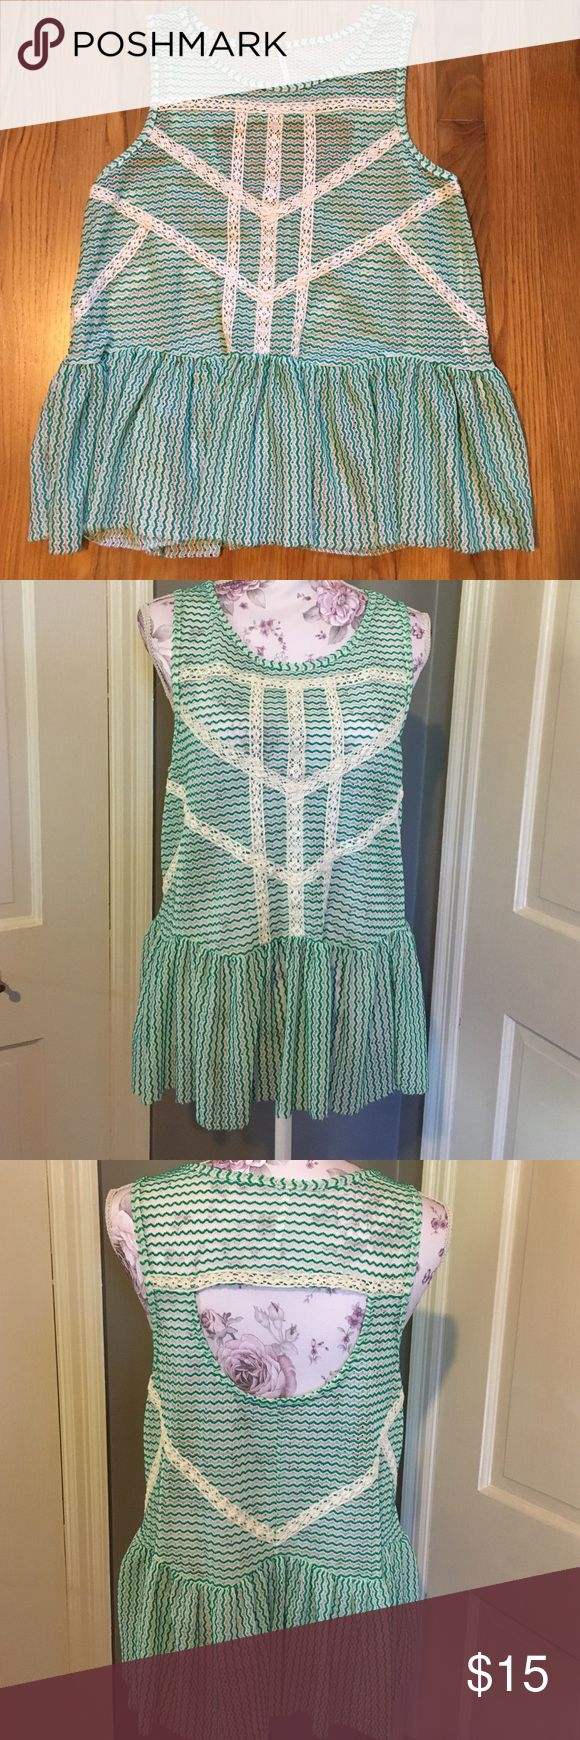 Free People lacy green and cream cami top Free People lacy green and cream cami tank top. Size medium. Polyester and nylon. Free People Tops Tank Tops